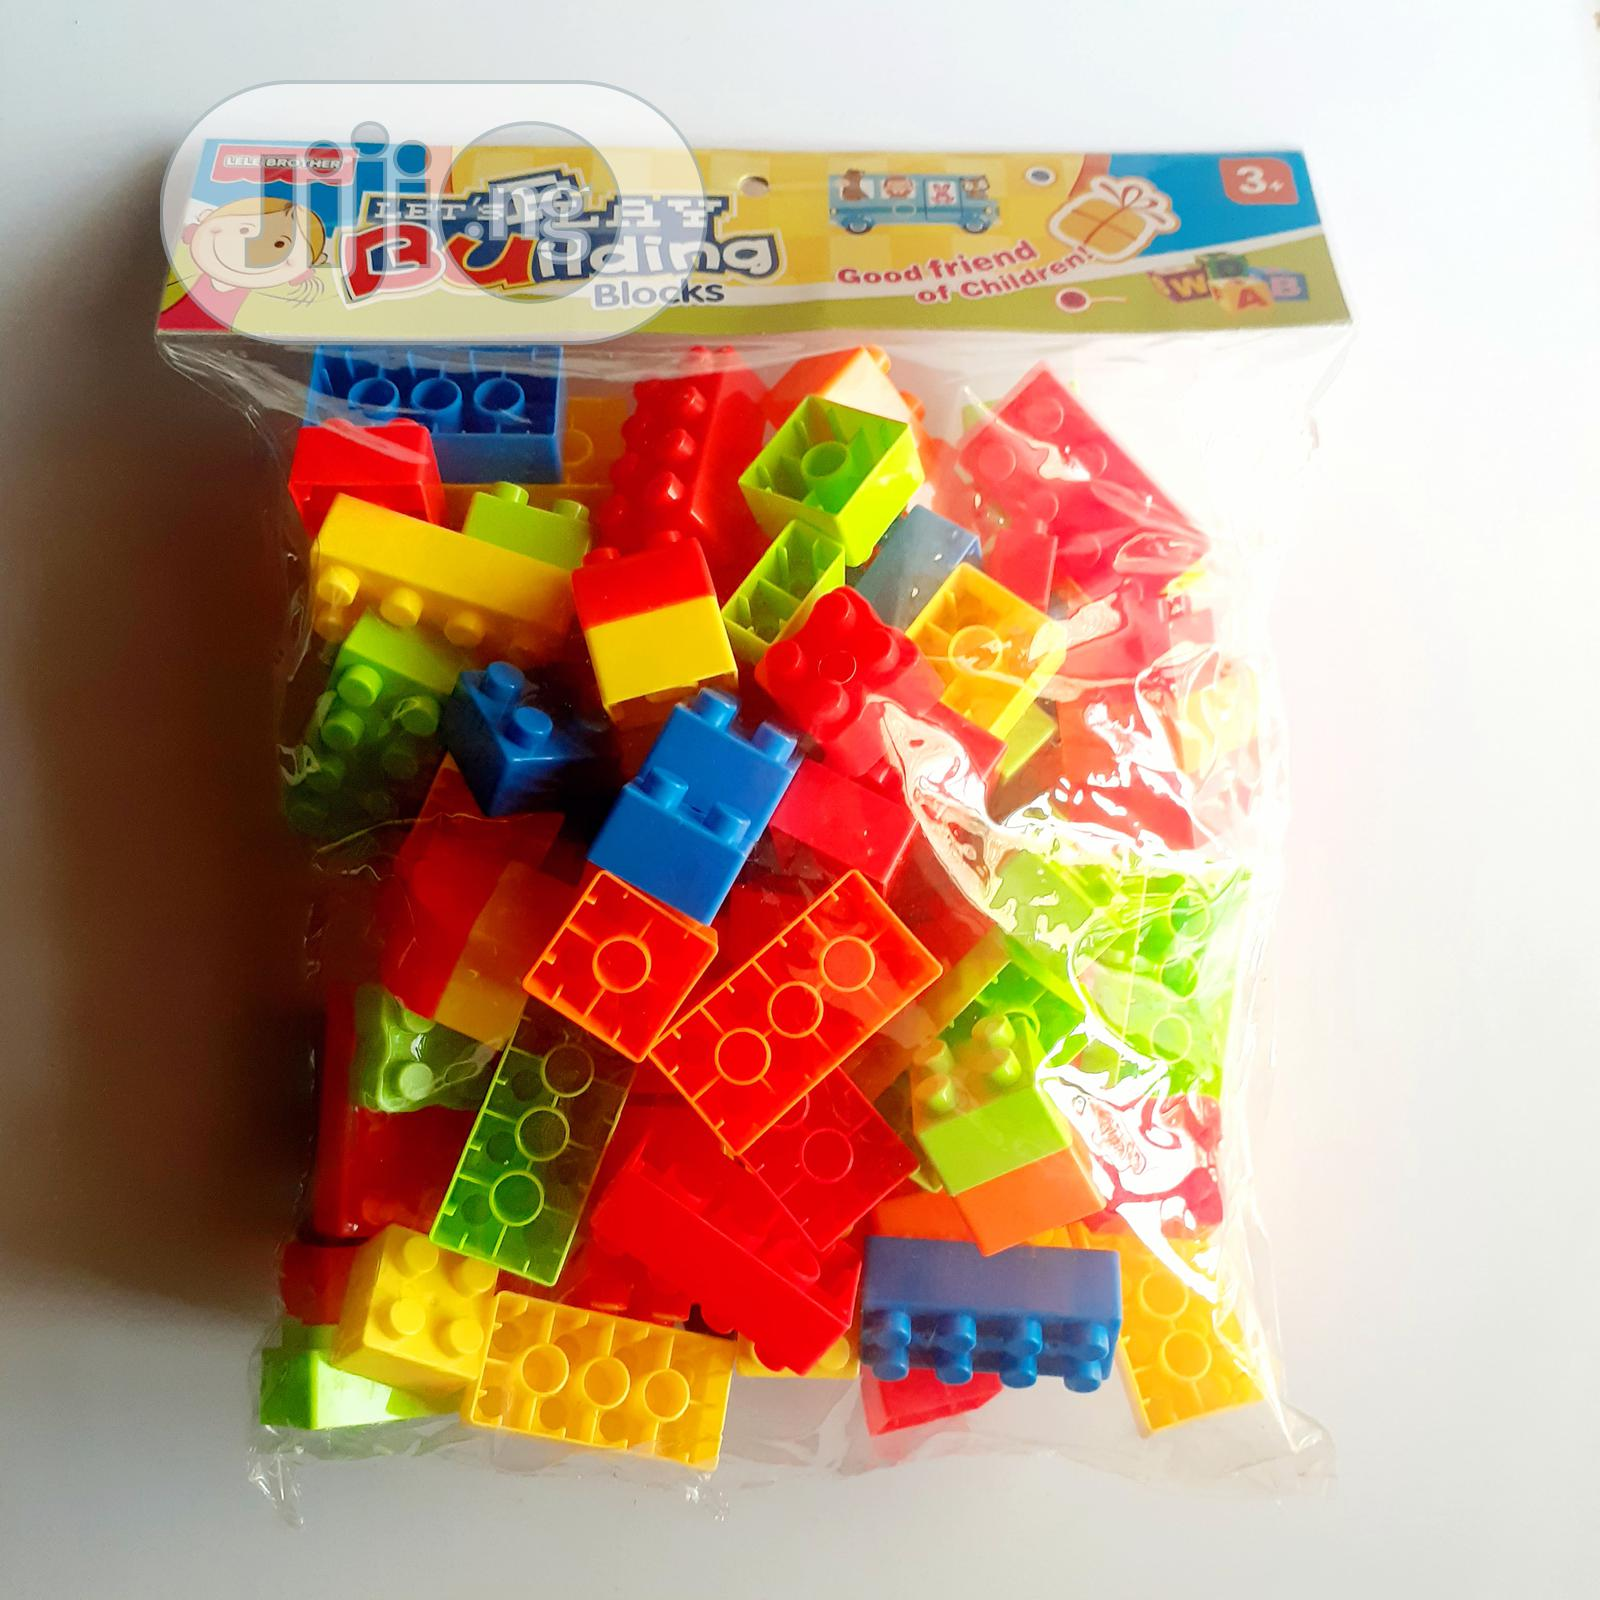 Generic Lego Children Building Blocks | Toys for sale in Surulere, Lagos State, Nigeria